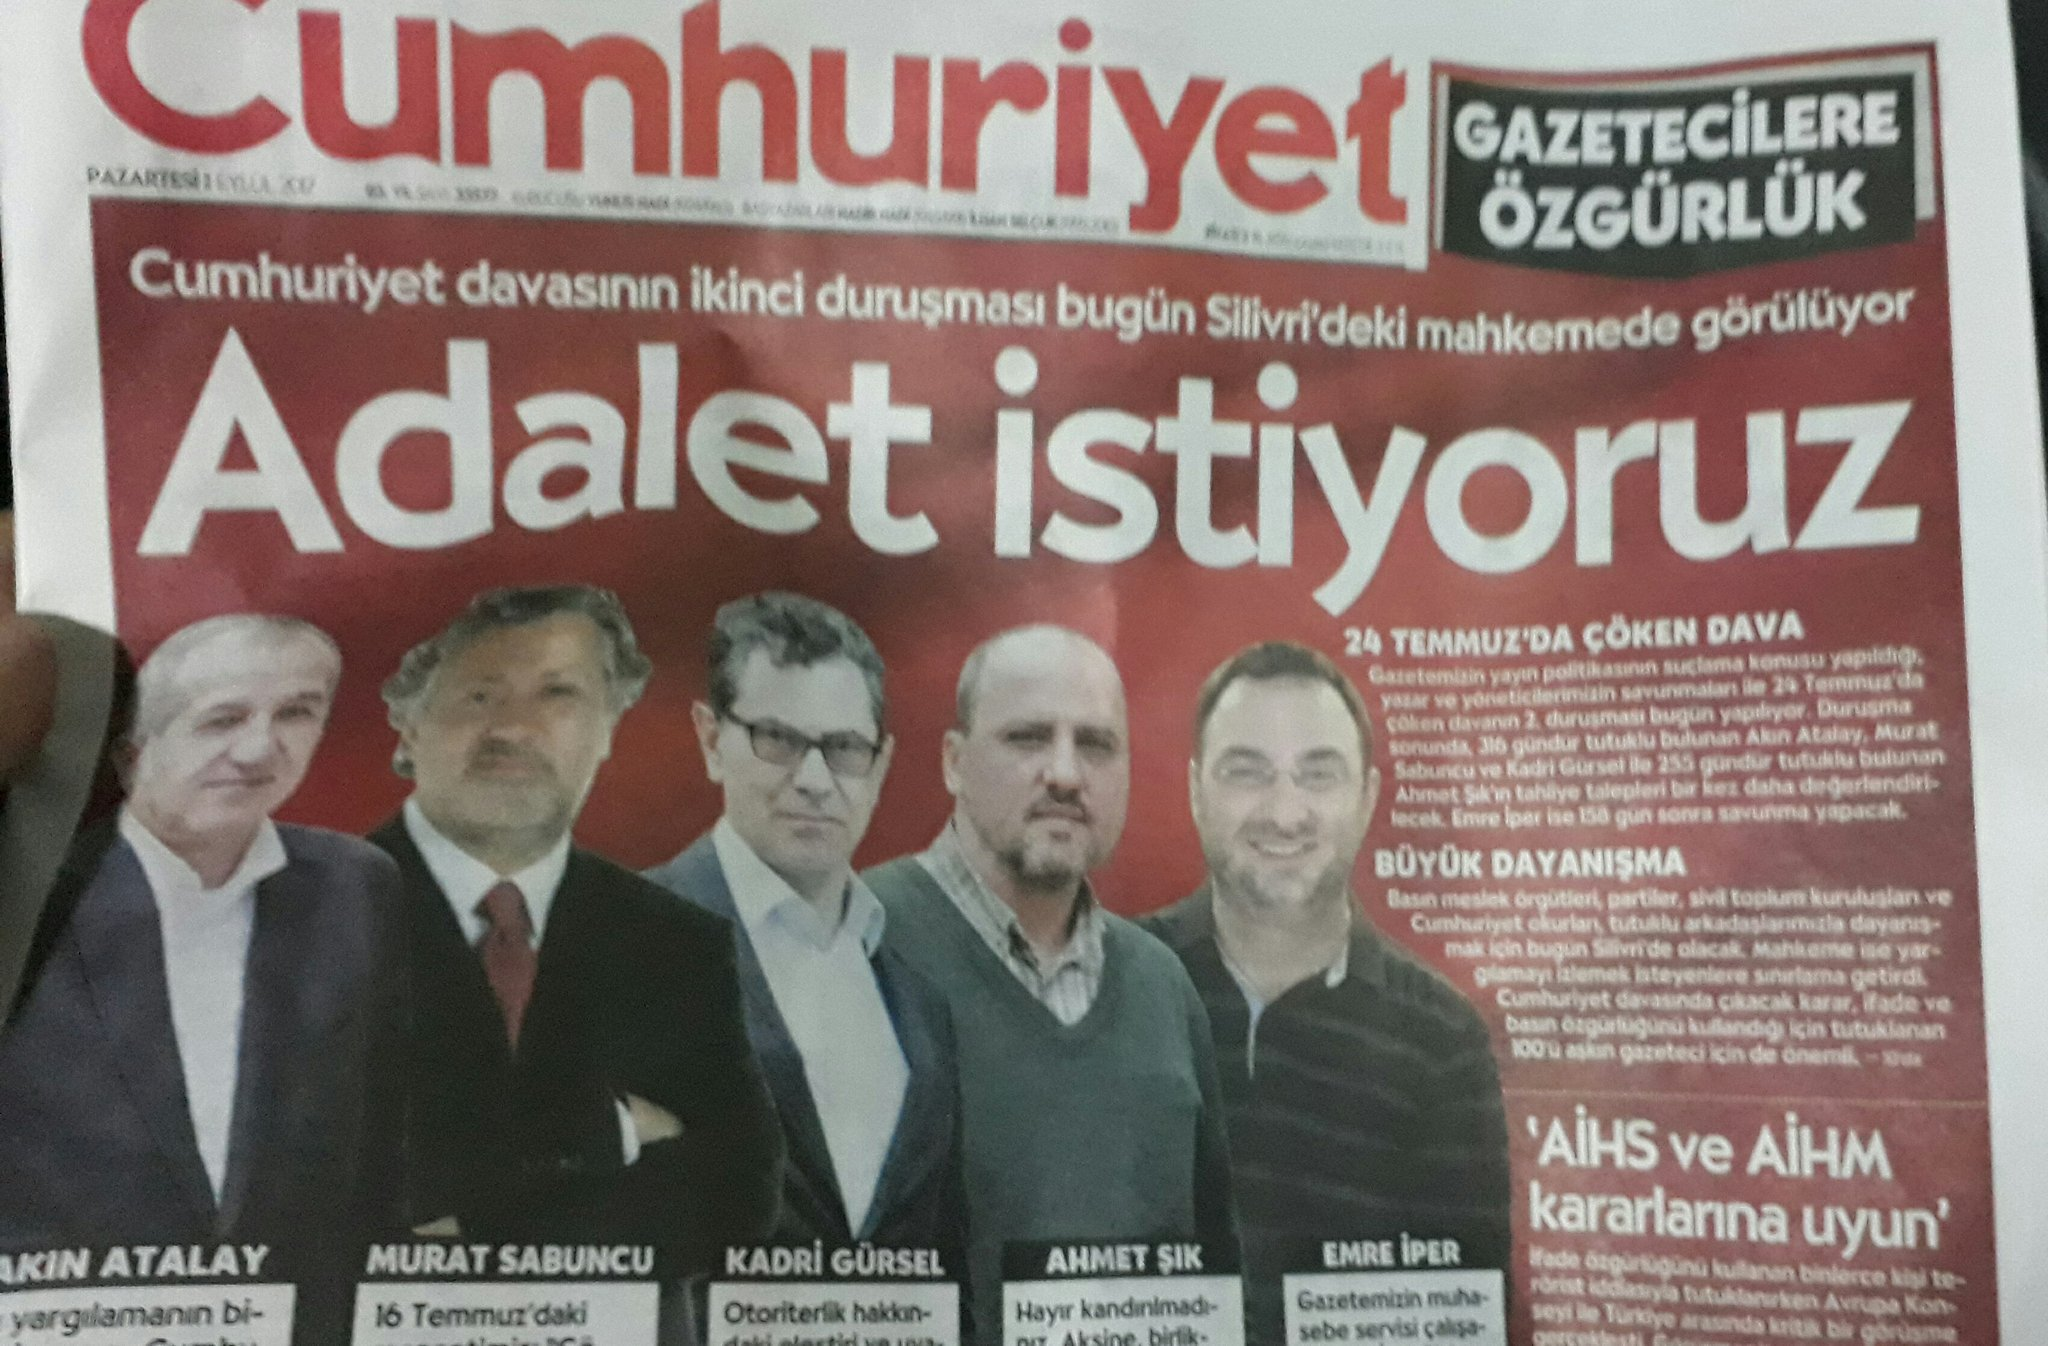 Briefing on the trial of Cumhuriyet newspaper staff